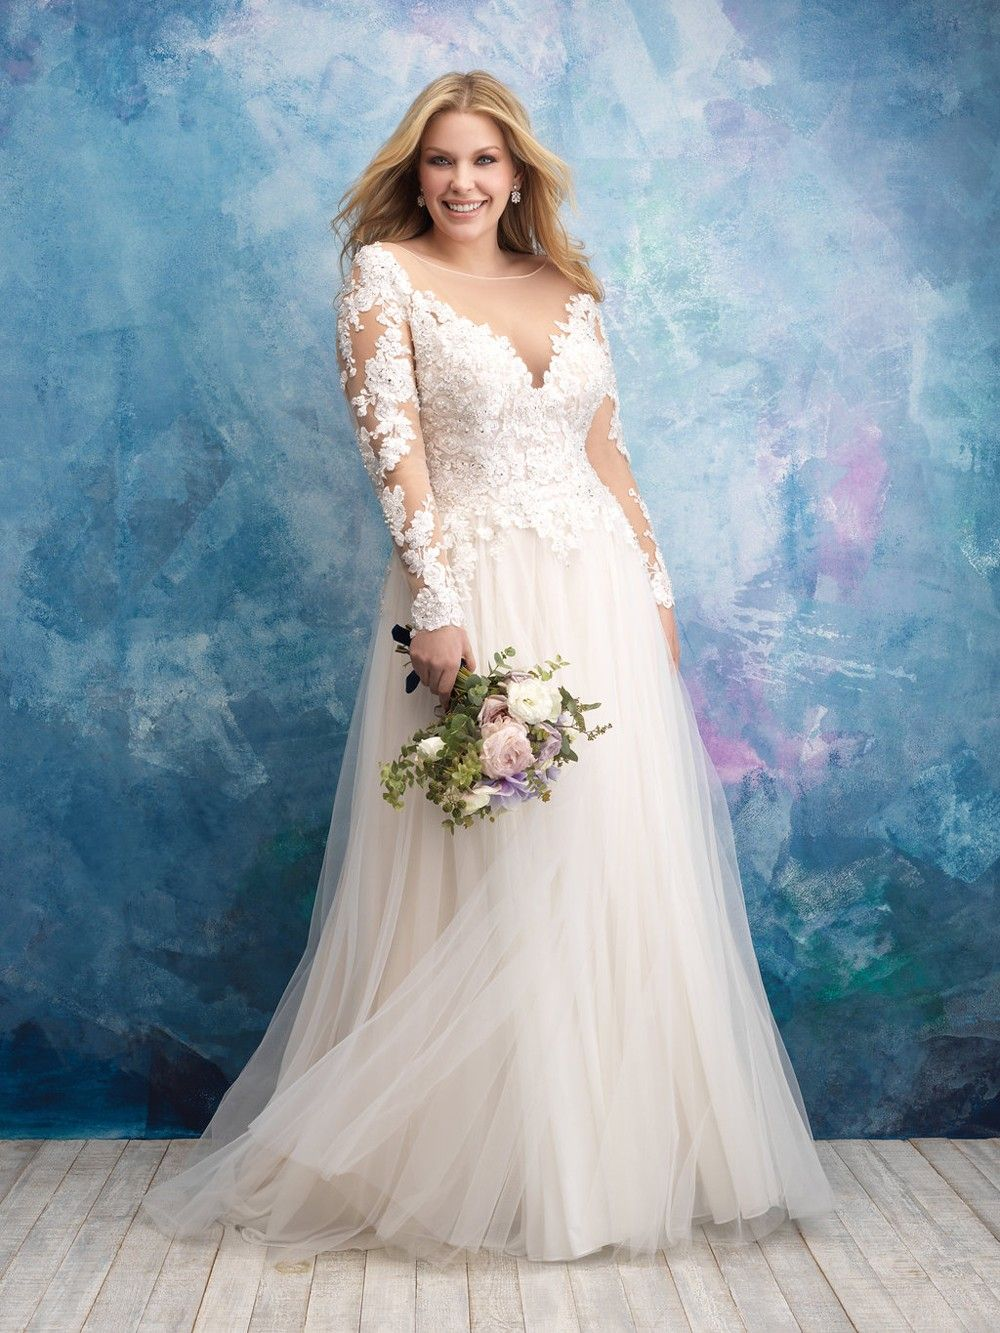 Plus Size Wedding Dress By Allure Bridals Style 9624 Slim Beaded Straps Support This Delicate Yet Allure Wedding Dresses Allure Bridal Plus Wedding Dresses [ 2020 x 908 Pixel ]